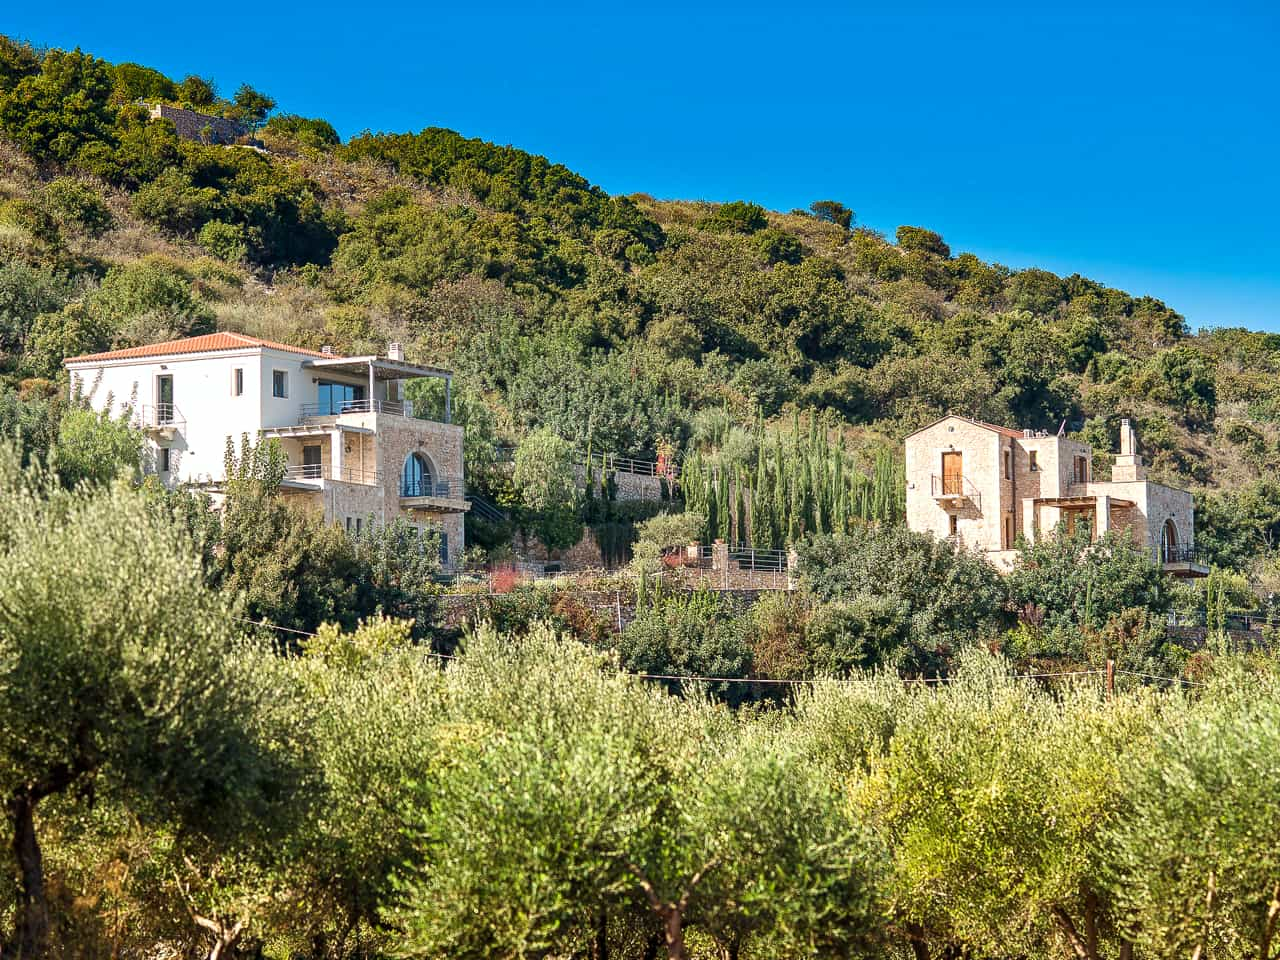 Photo of the Day : Bleverde Villas in Gavalochori - Chania